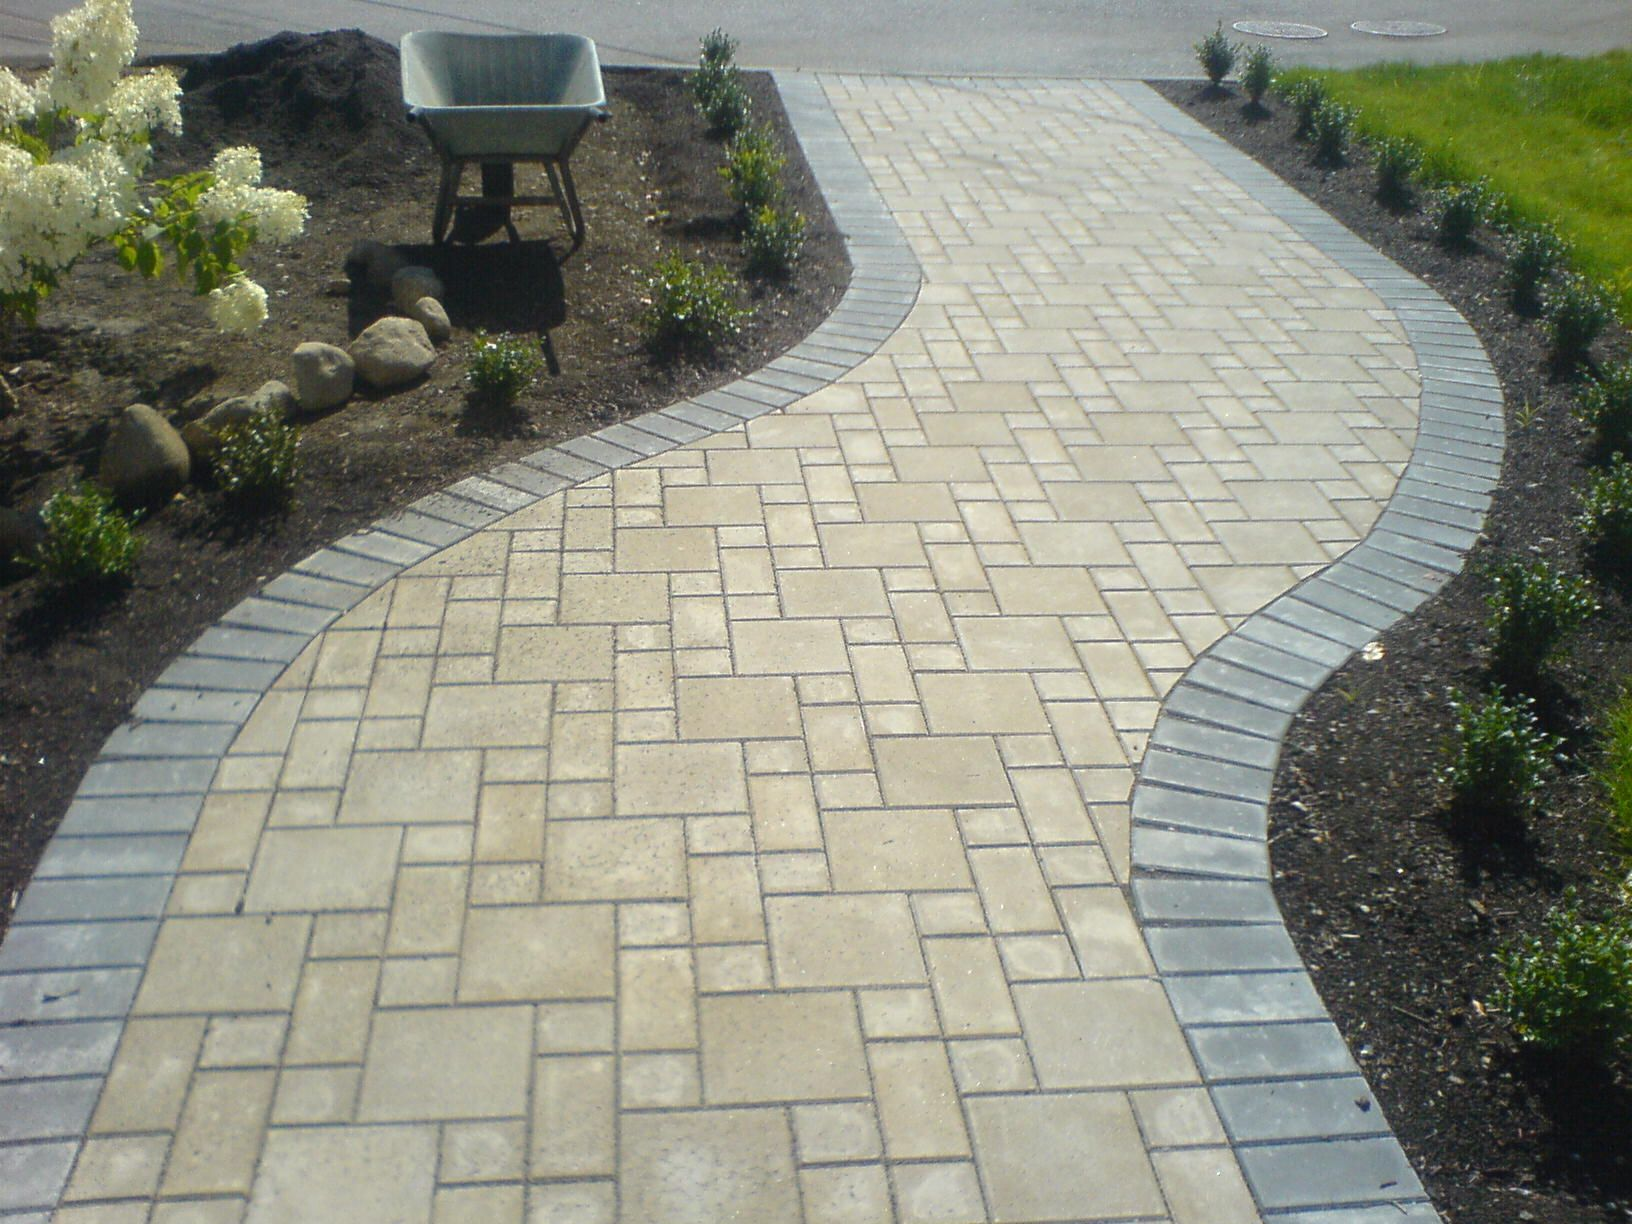 25 Great Stone Patio Ideas for Your Home | Stone patios, Patio ...